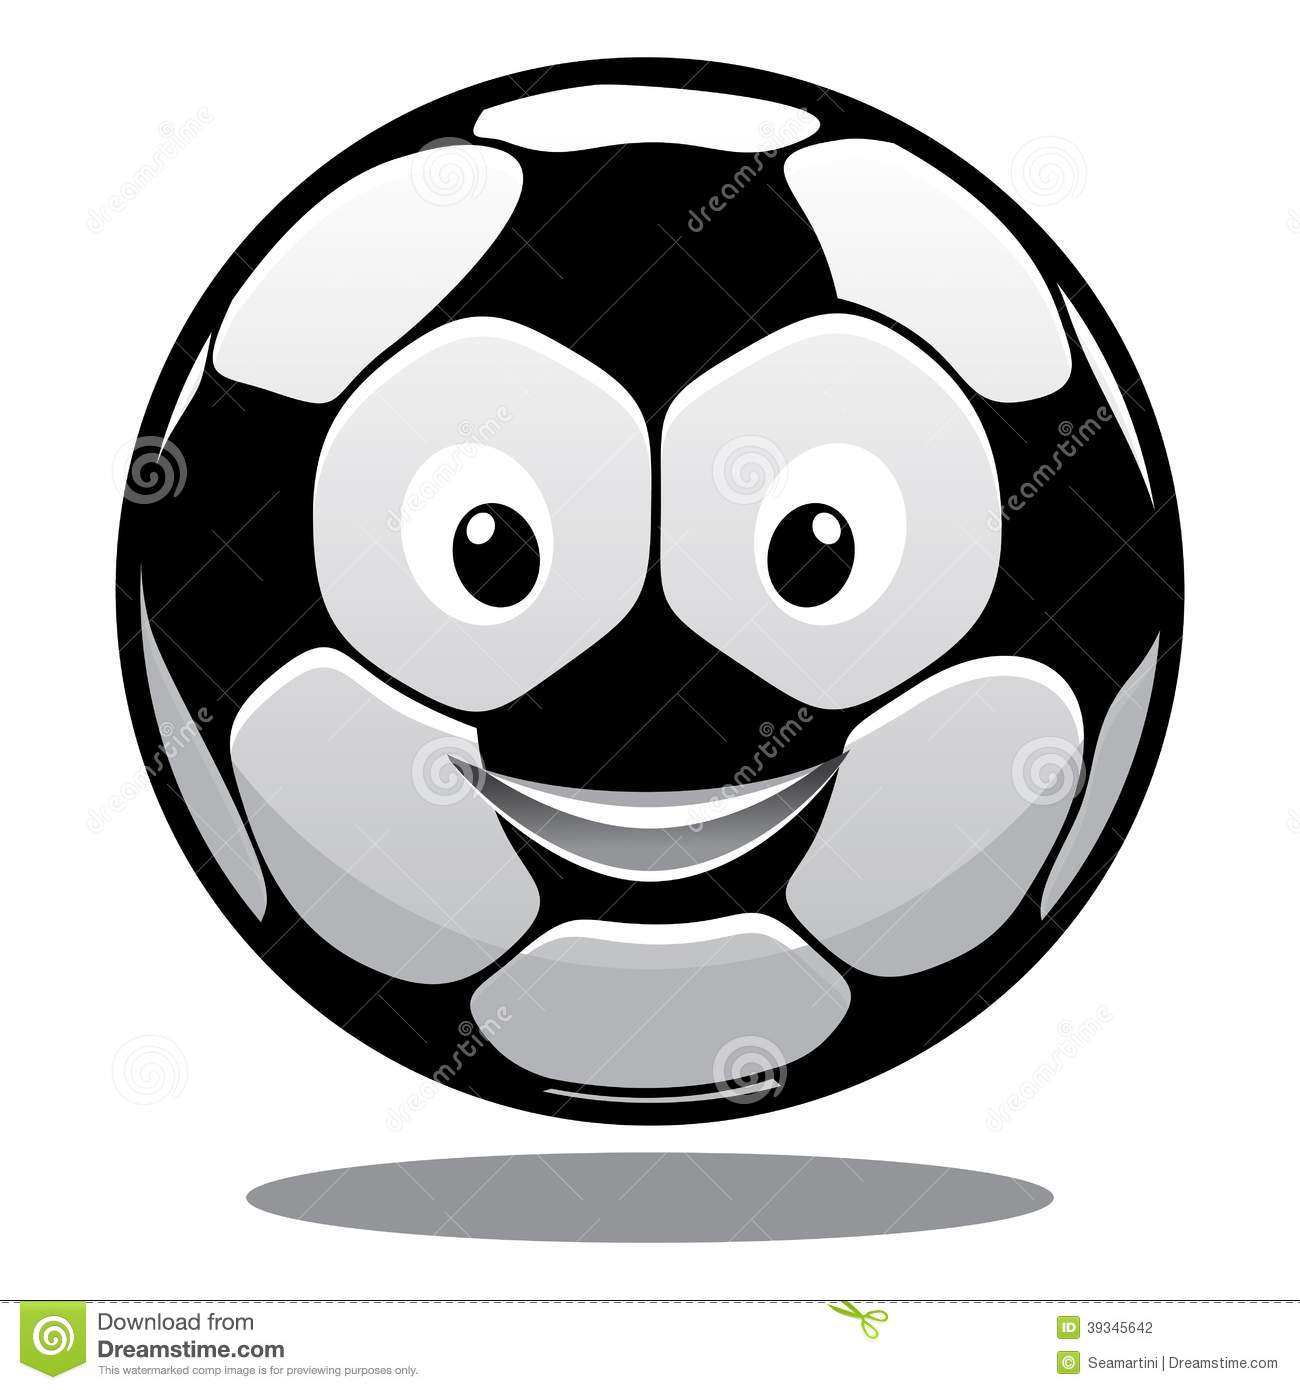 Happy smiling soccer ball with a hexagonal black and white pattern and ...